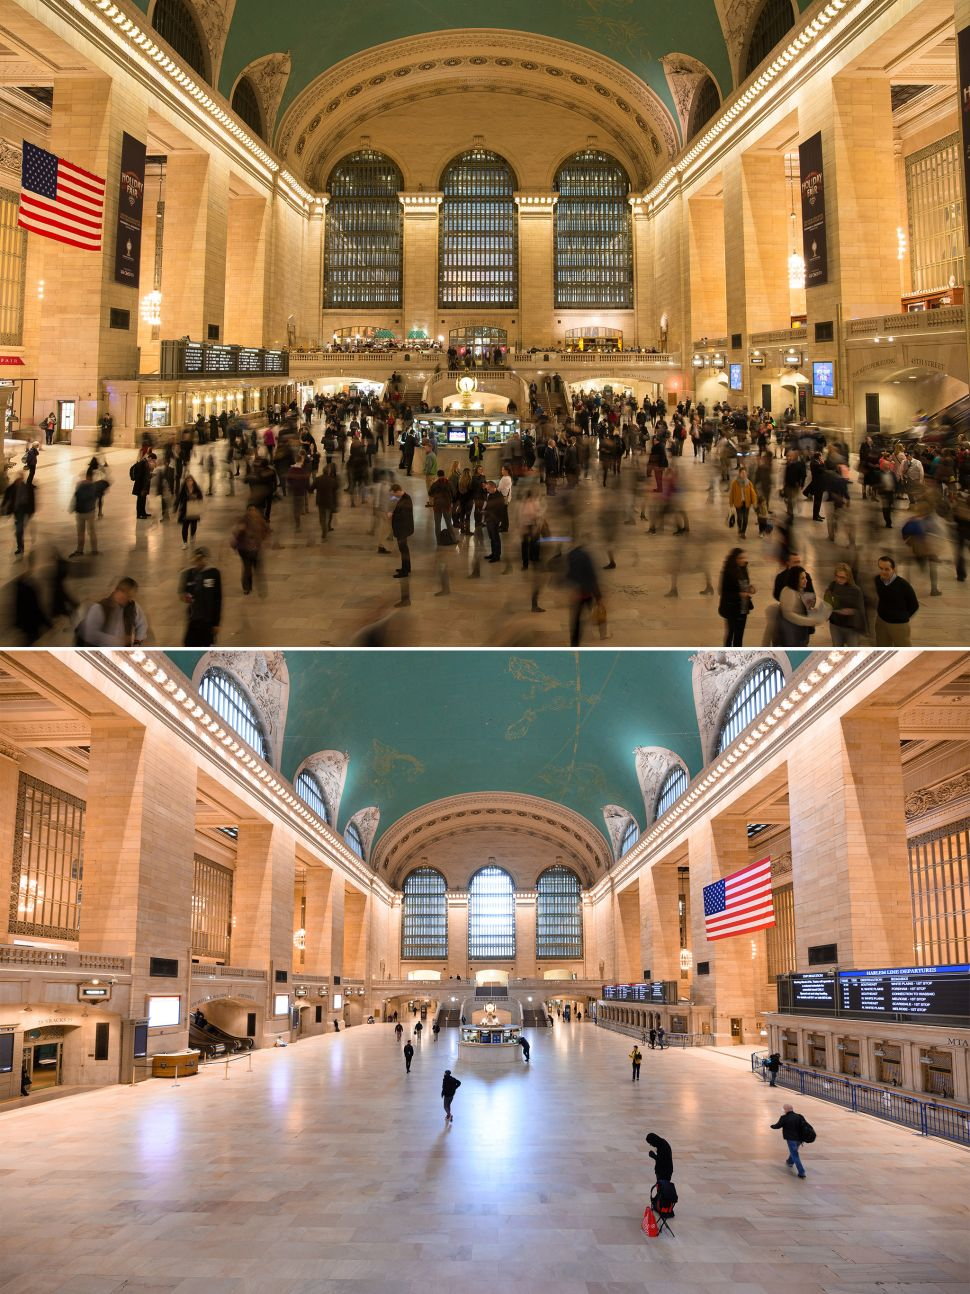 Grand Central Station before and after coronavirus